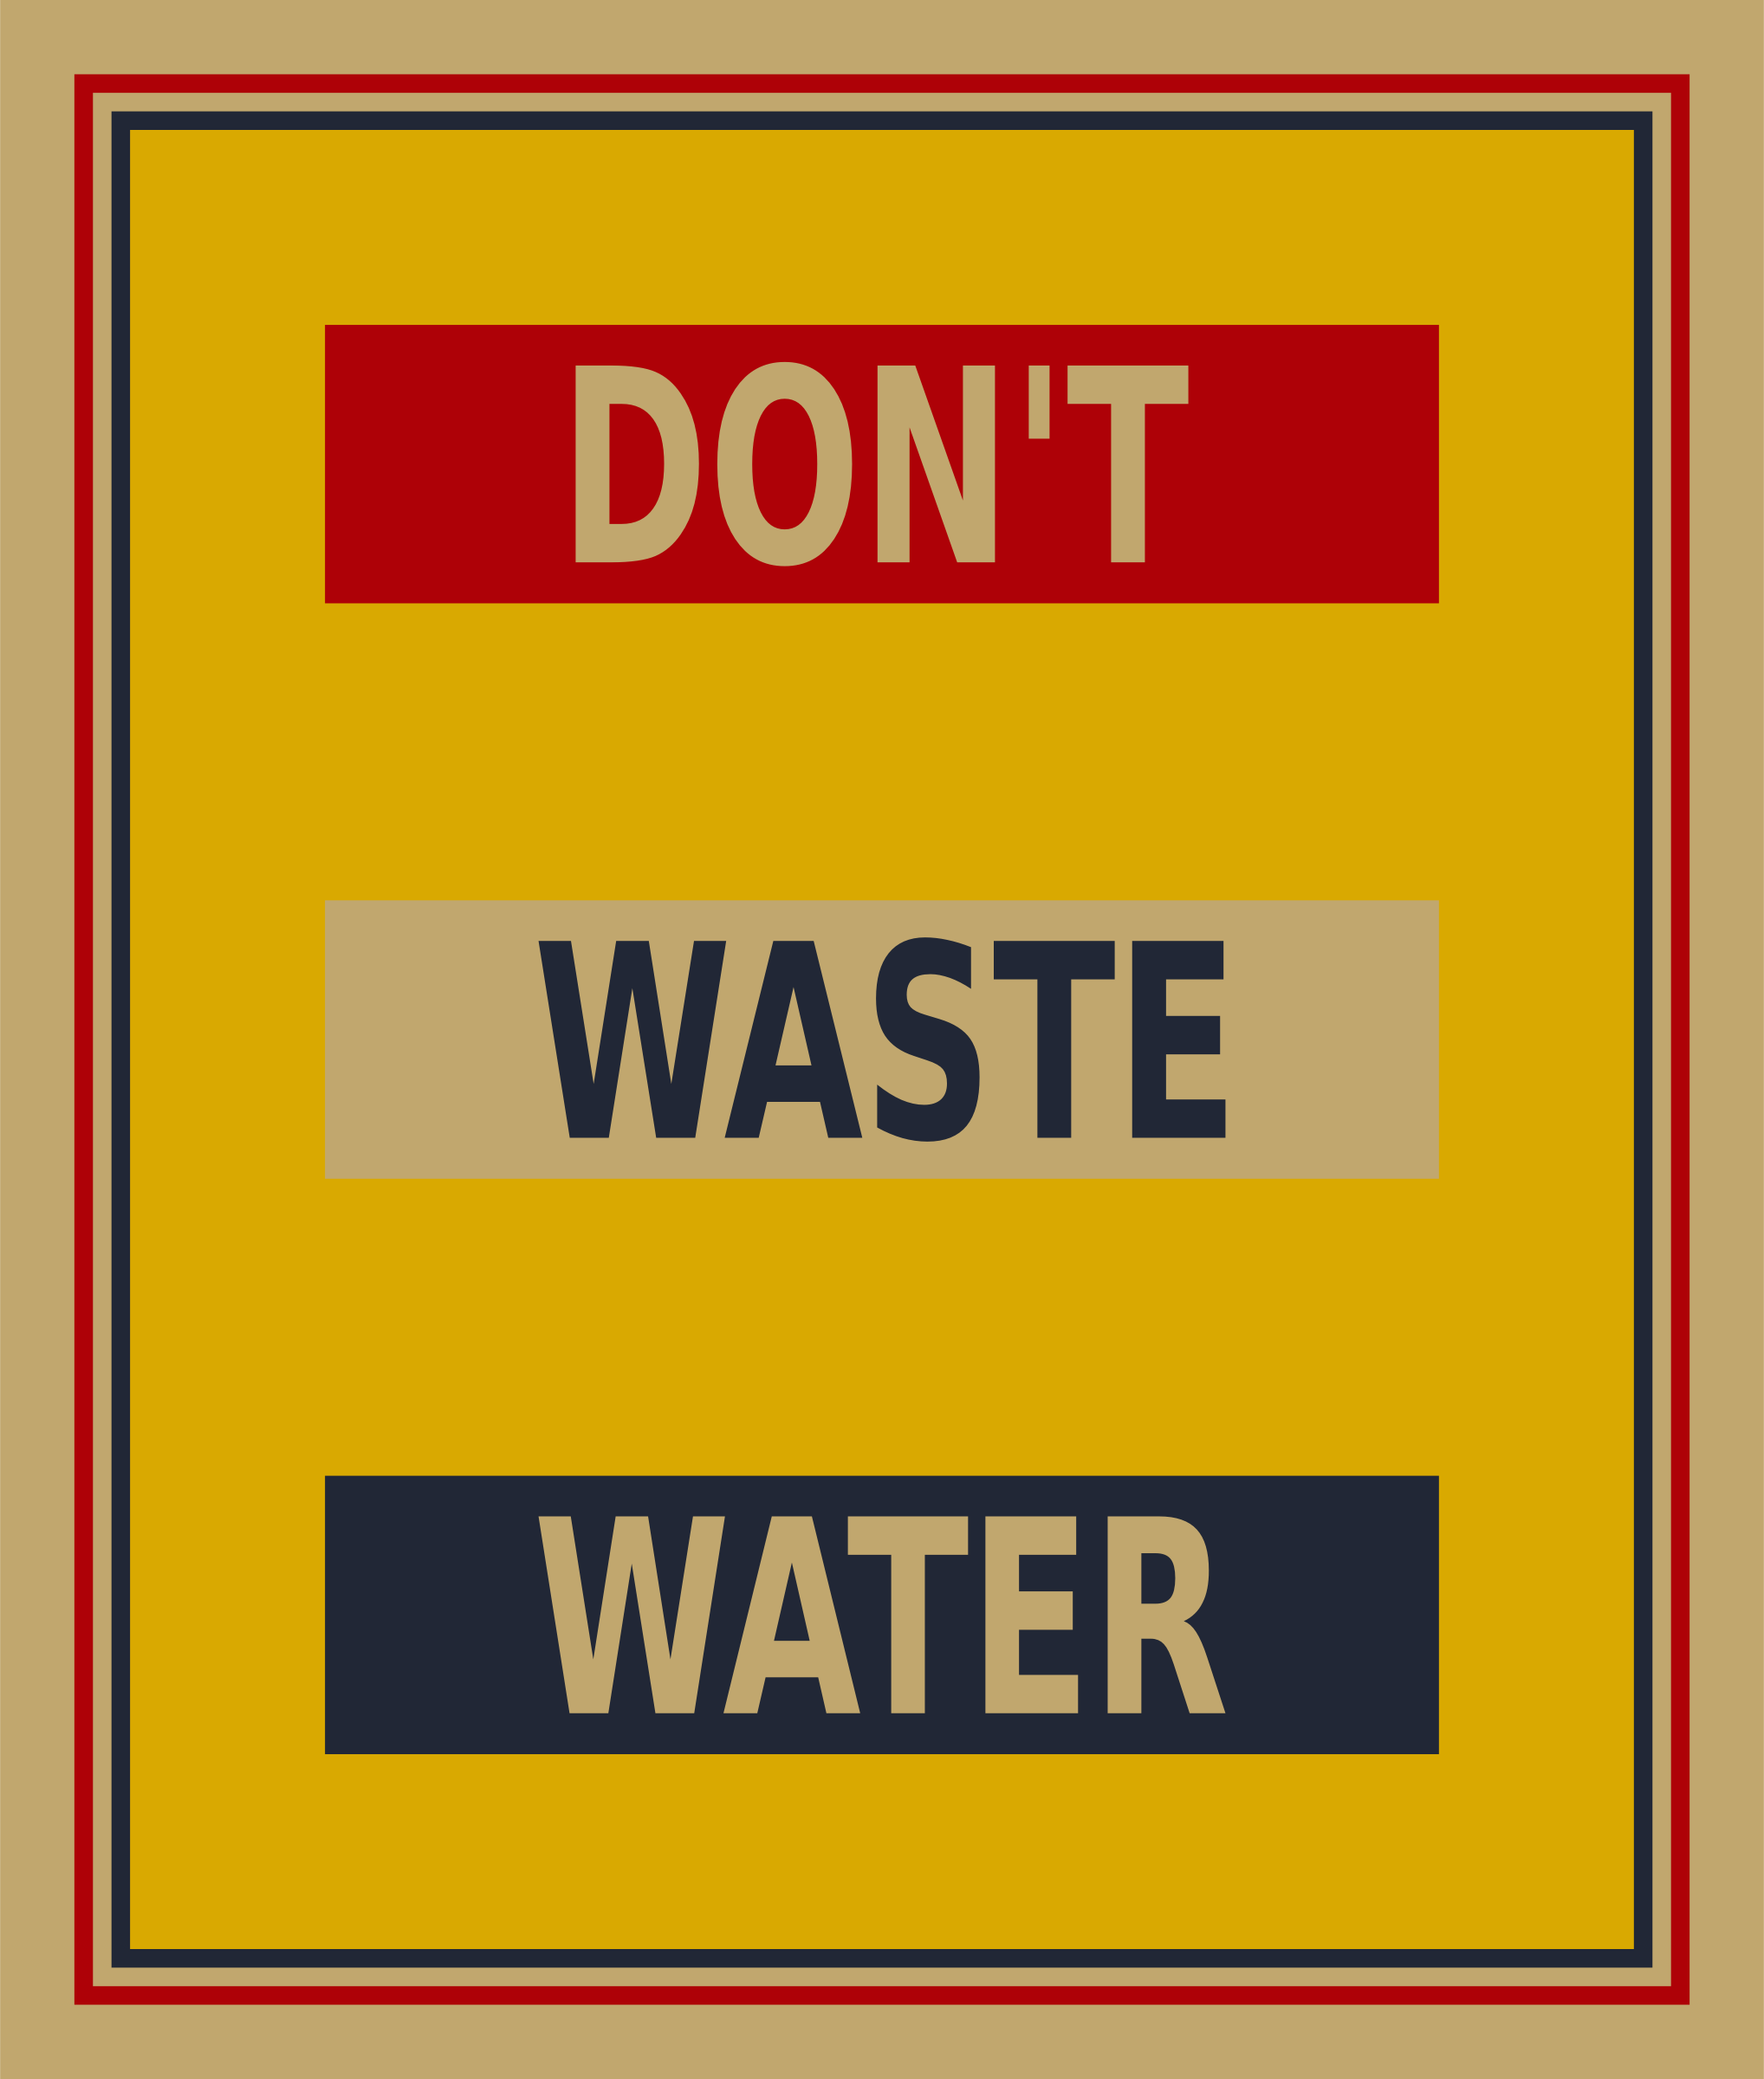 Don't waste water poster by Firkin